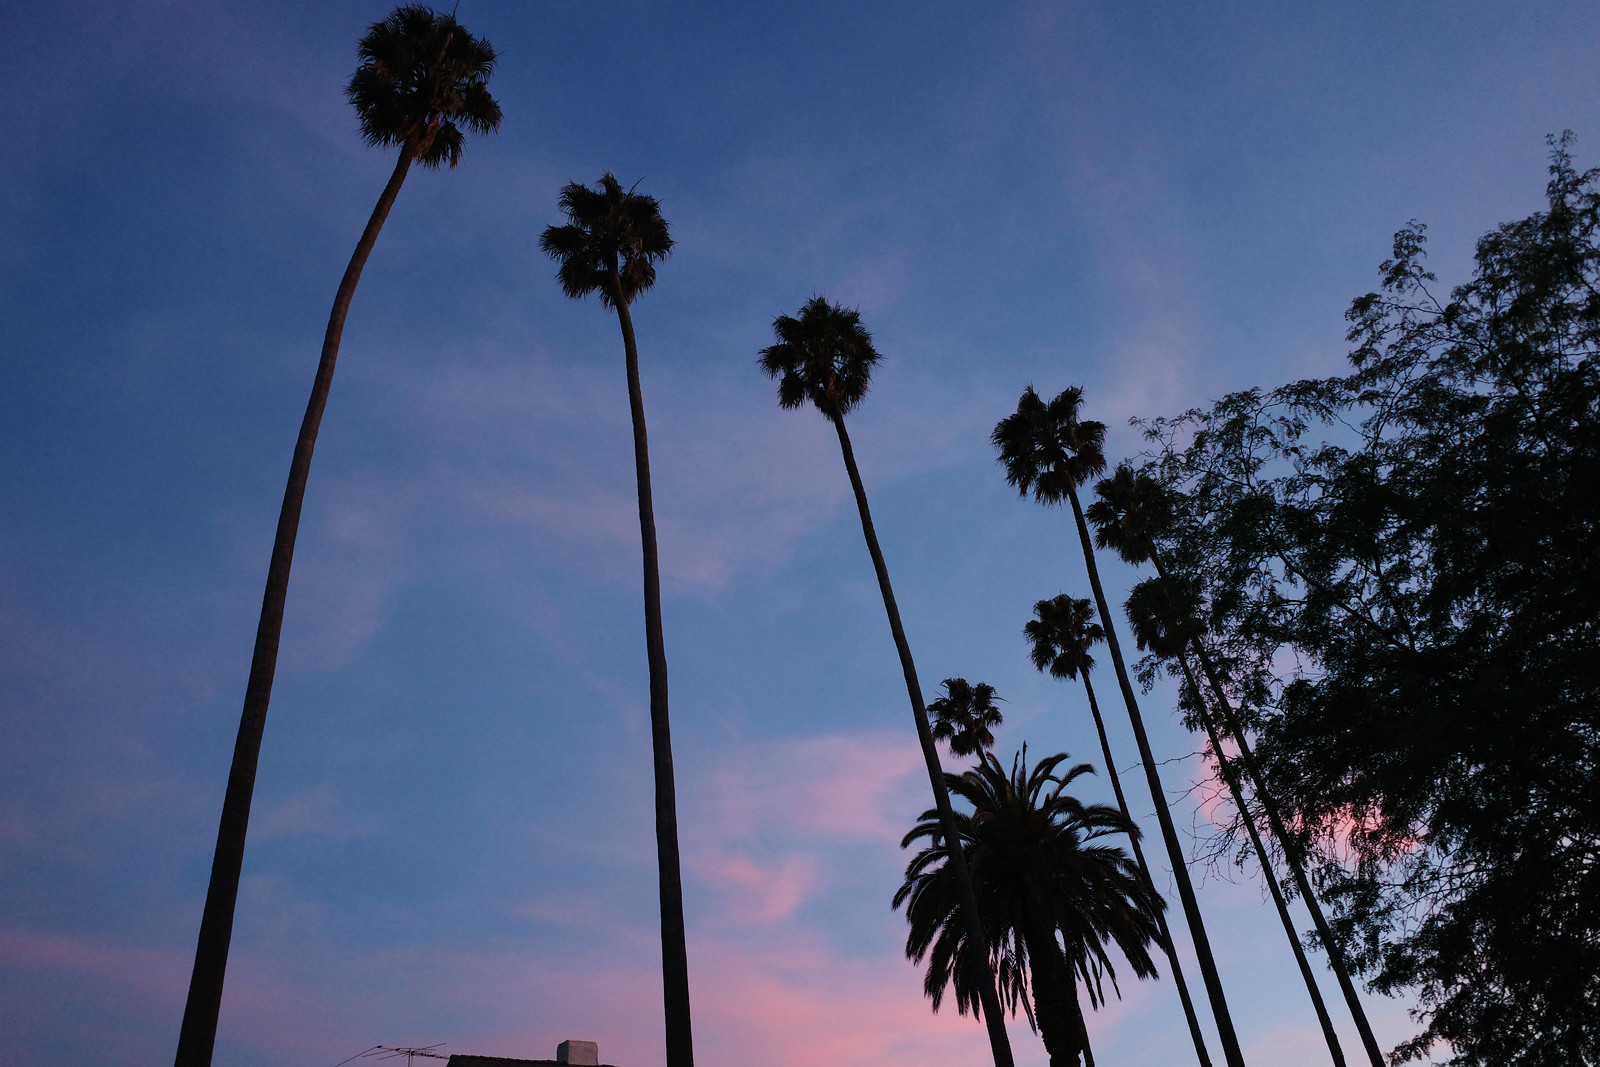 palm trees against late sunset